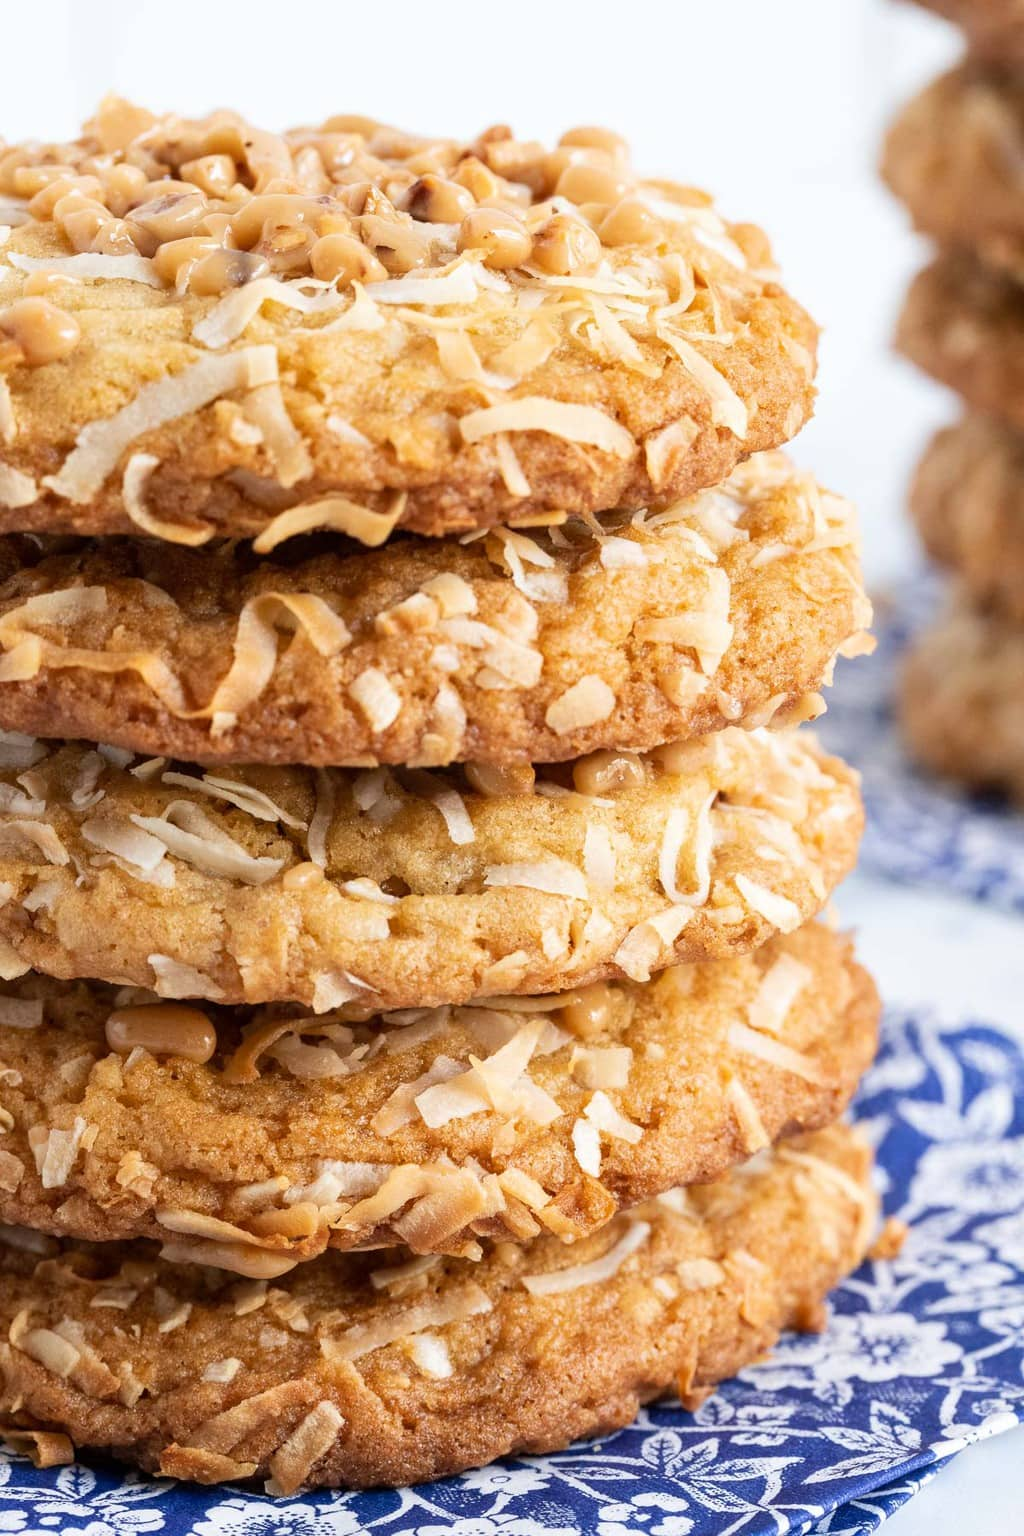 Extreme closeup vertical photo of a stack of Crispy Chewy Carolina Coconut Cookies.